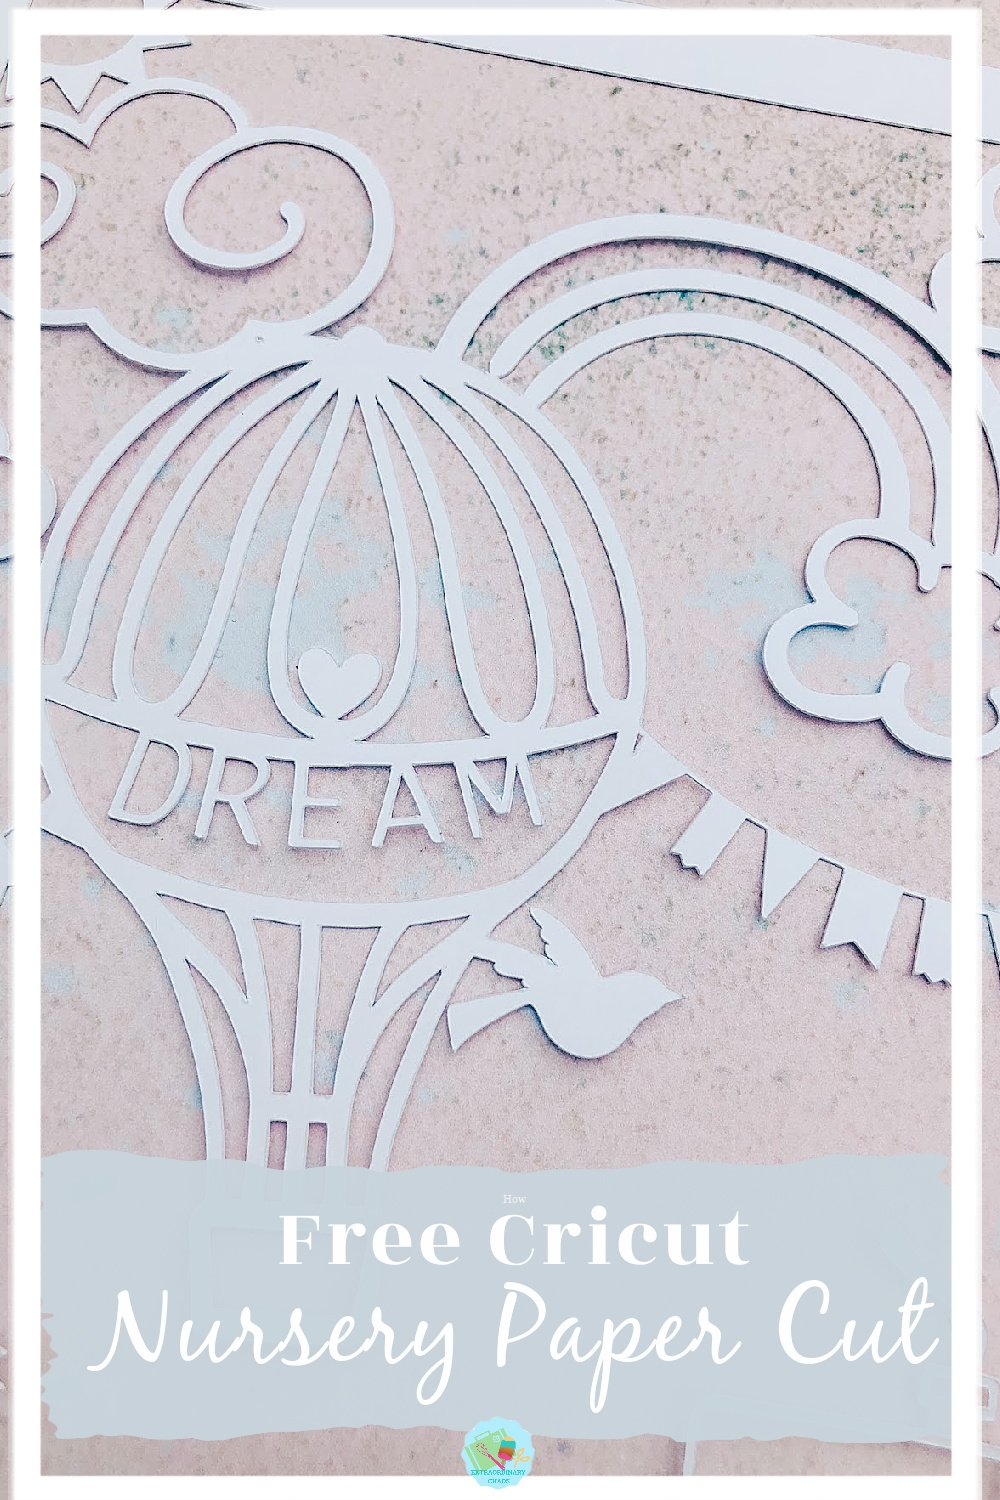 Free Cricut Hot Air Balloon cut for scrapbook projects or framing